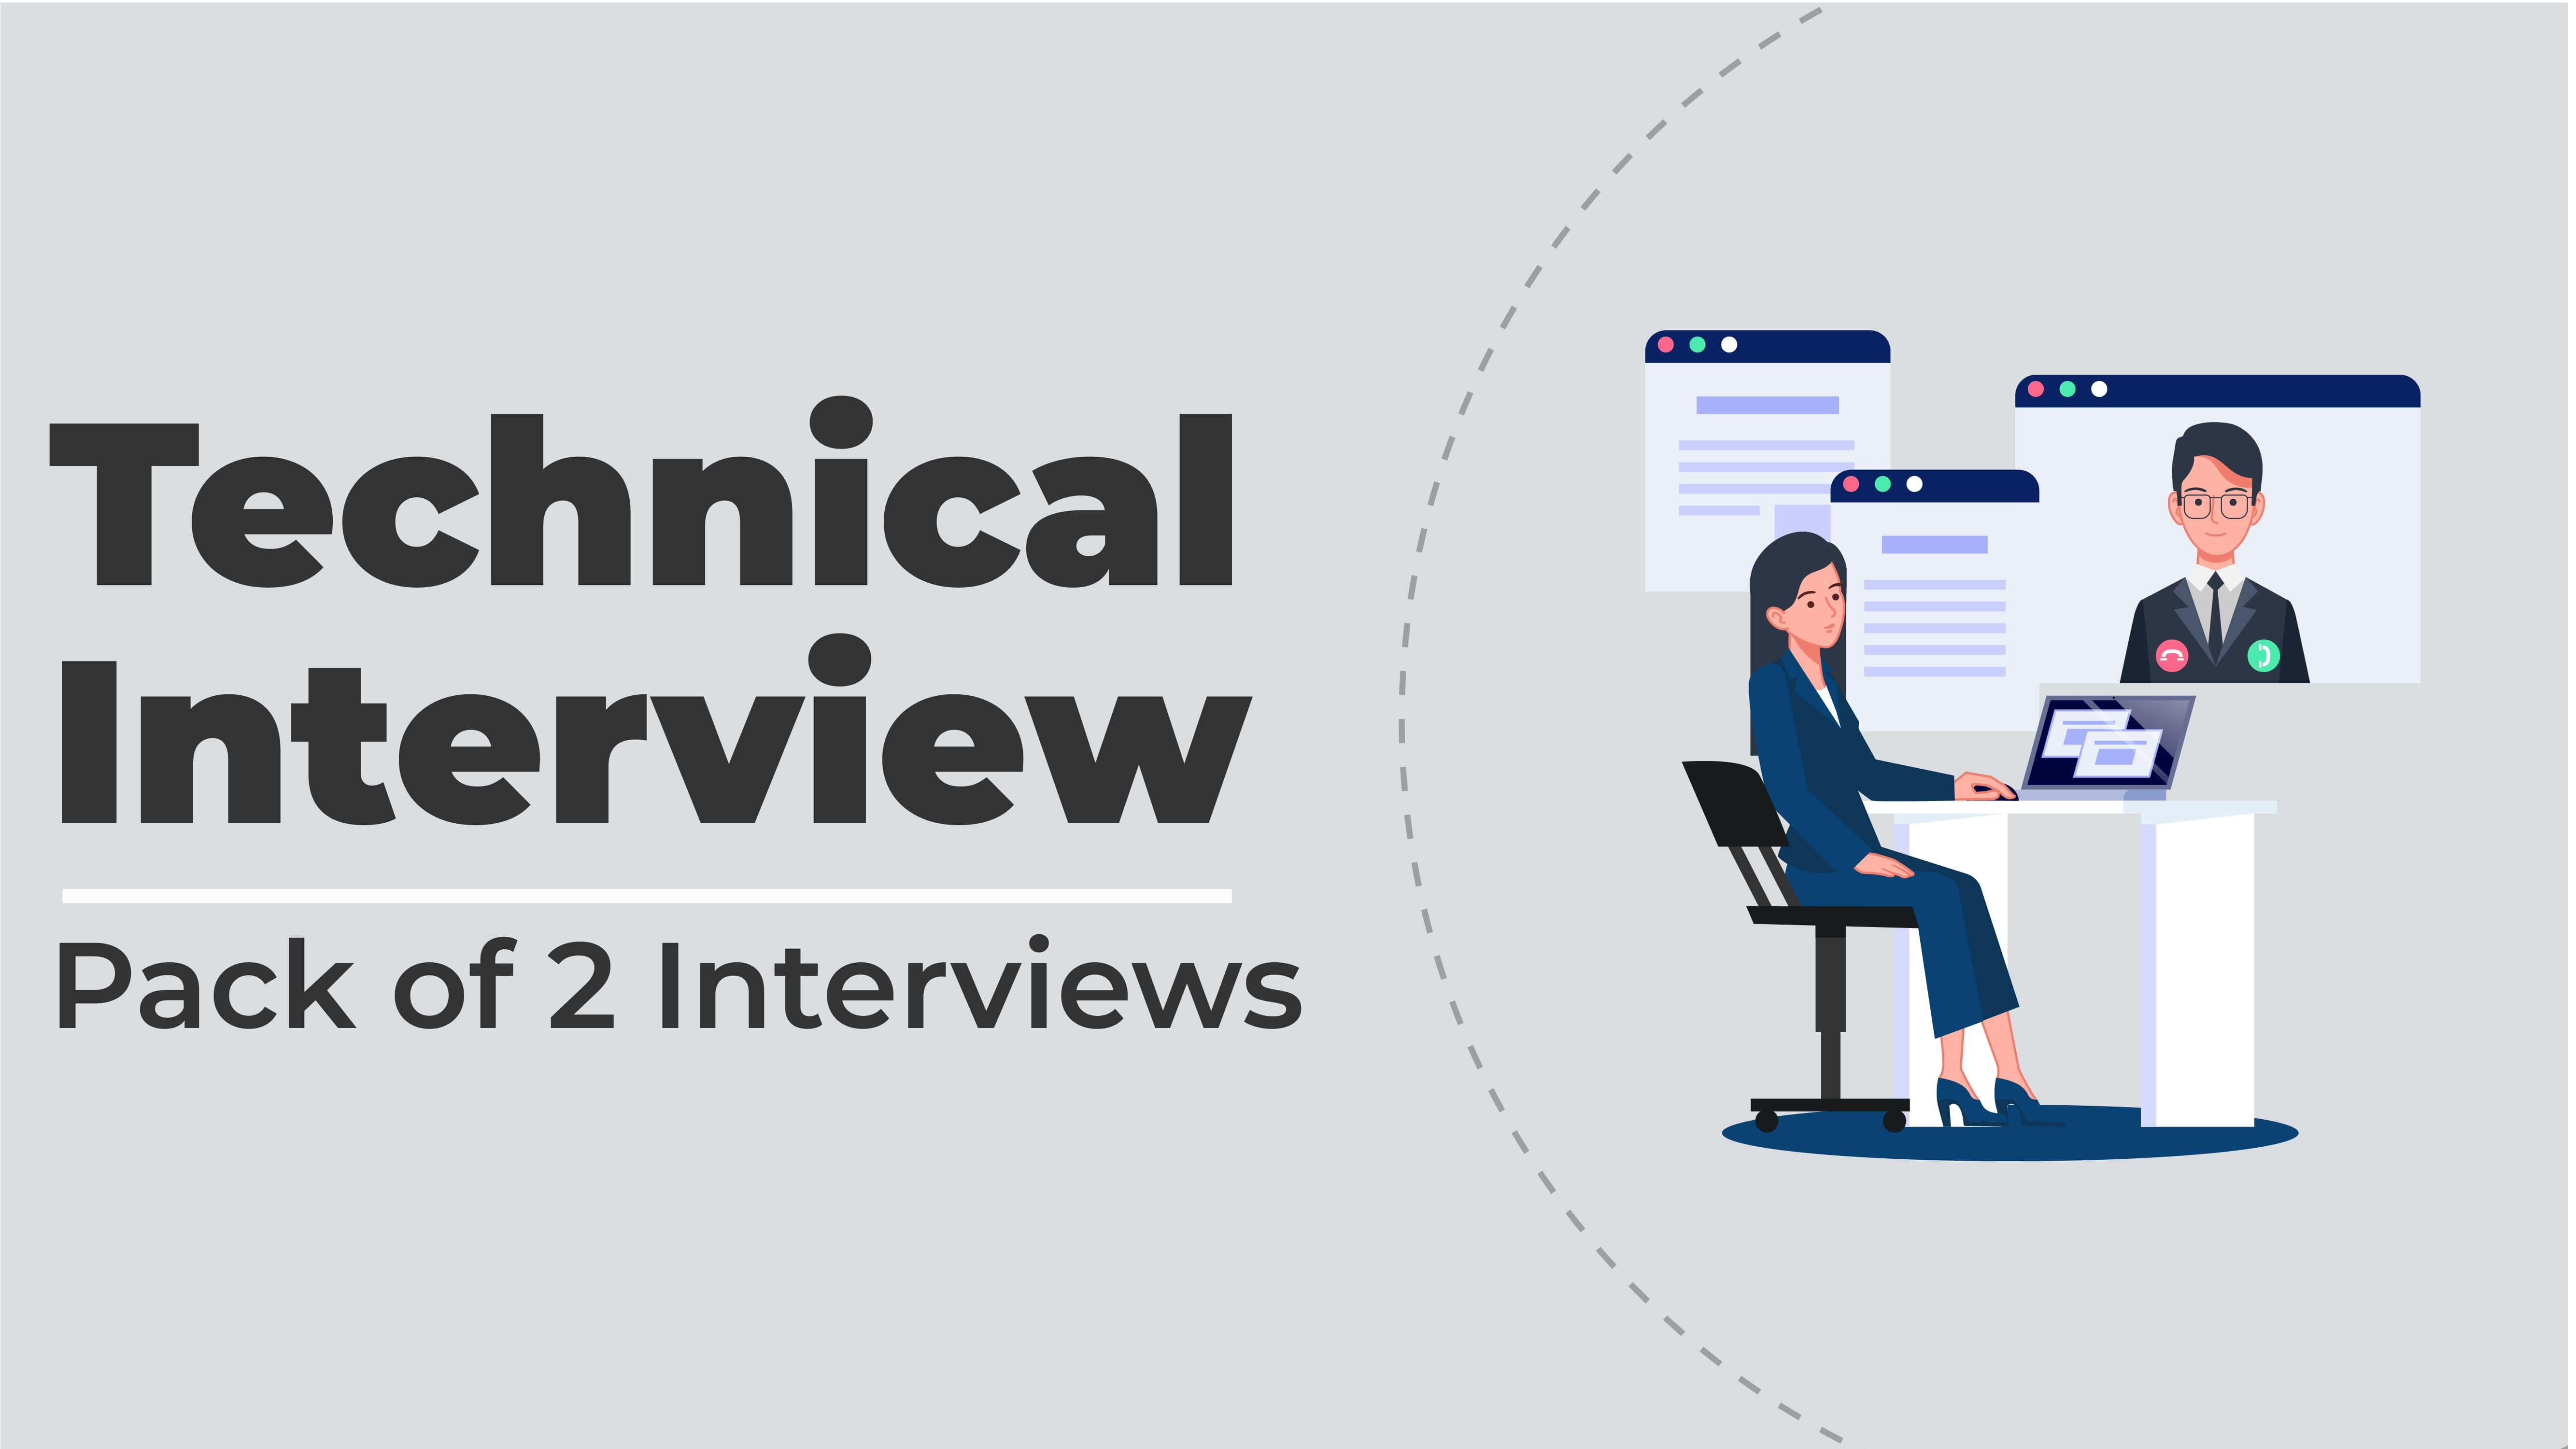 Technical Interview (Pack of 2 Interviews)